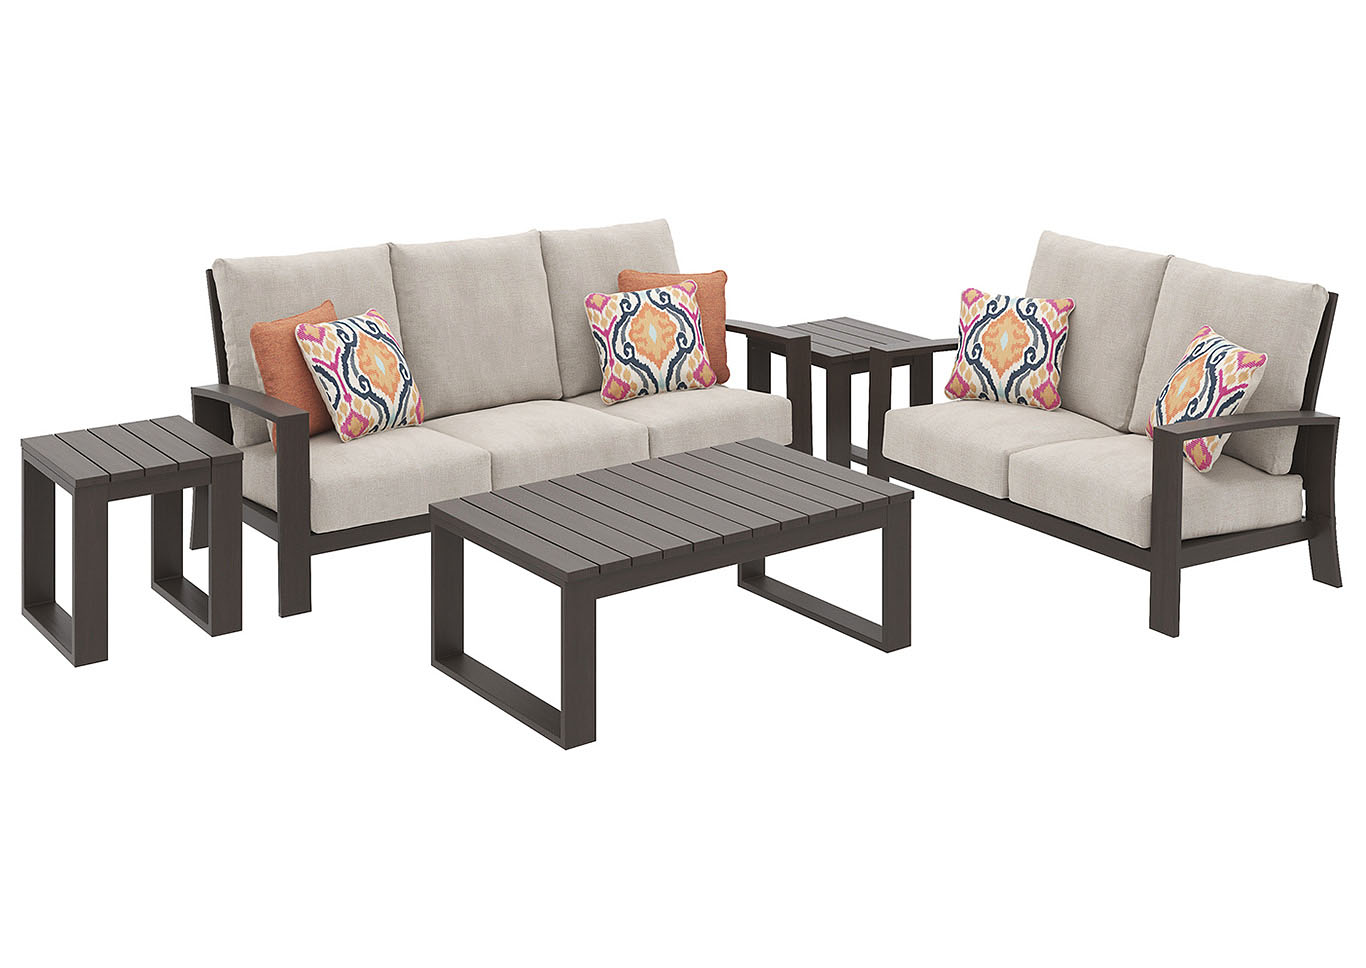 ashley furniture home independently owned and operated end tables for dark brown couch cordova reef sofa loveseat rectangular cocktail table square building rustic dining room